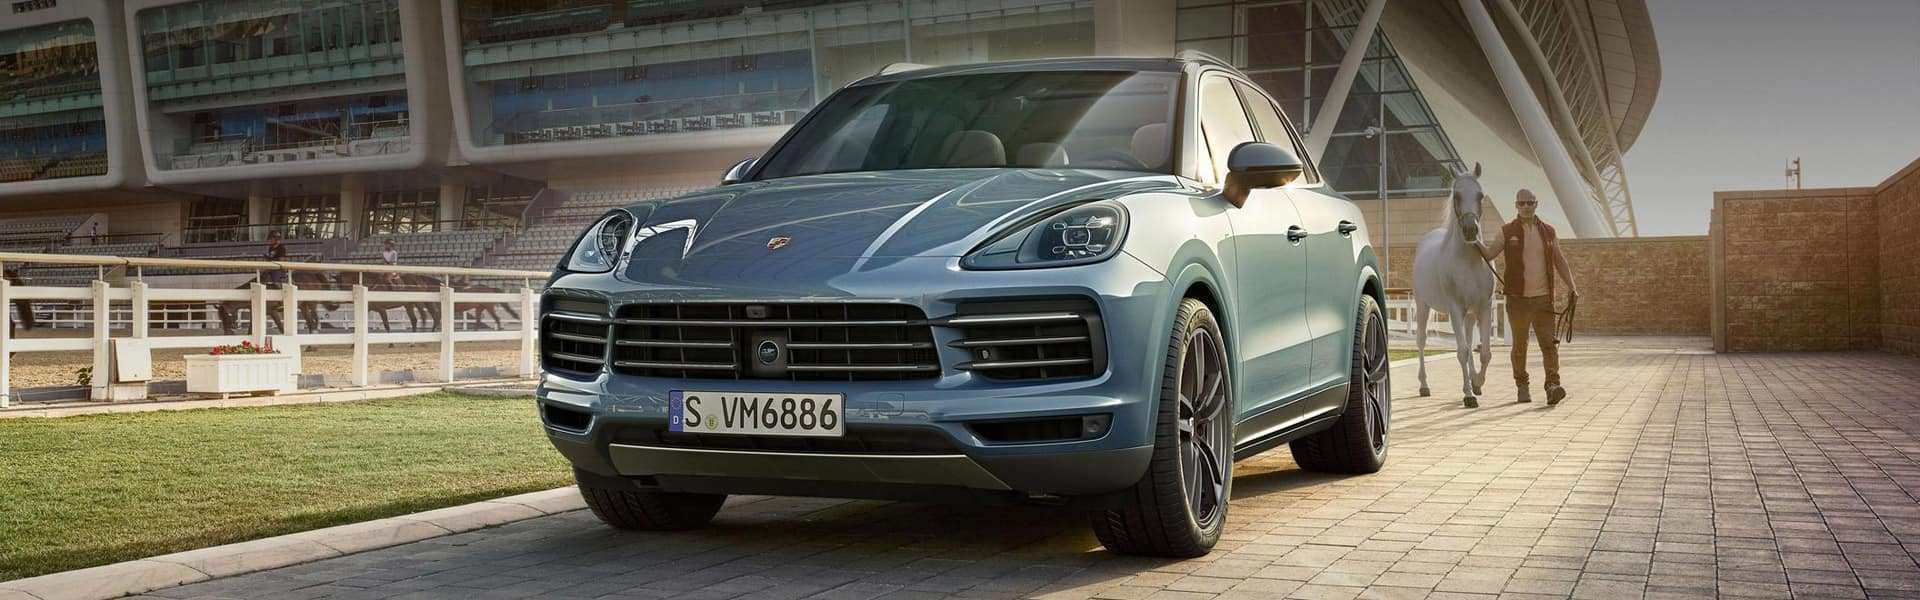 87 The 2019 Porsche Cayenne Standard Features Release with 2019 Porsche Cayenne Standard Features